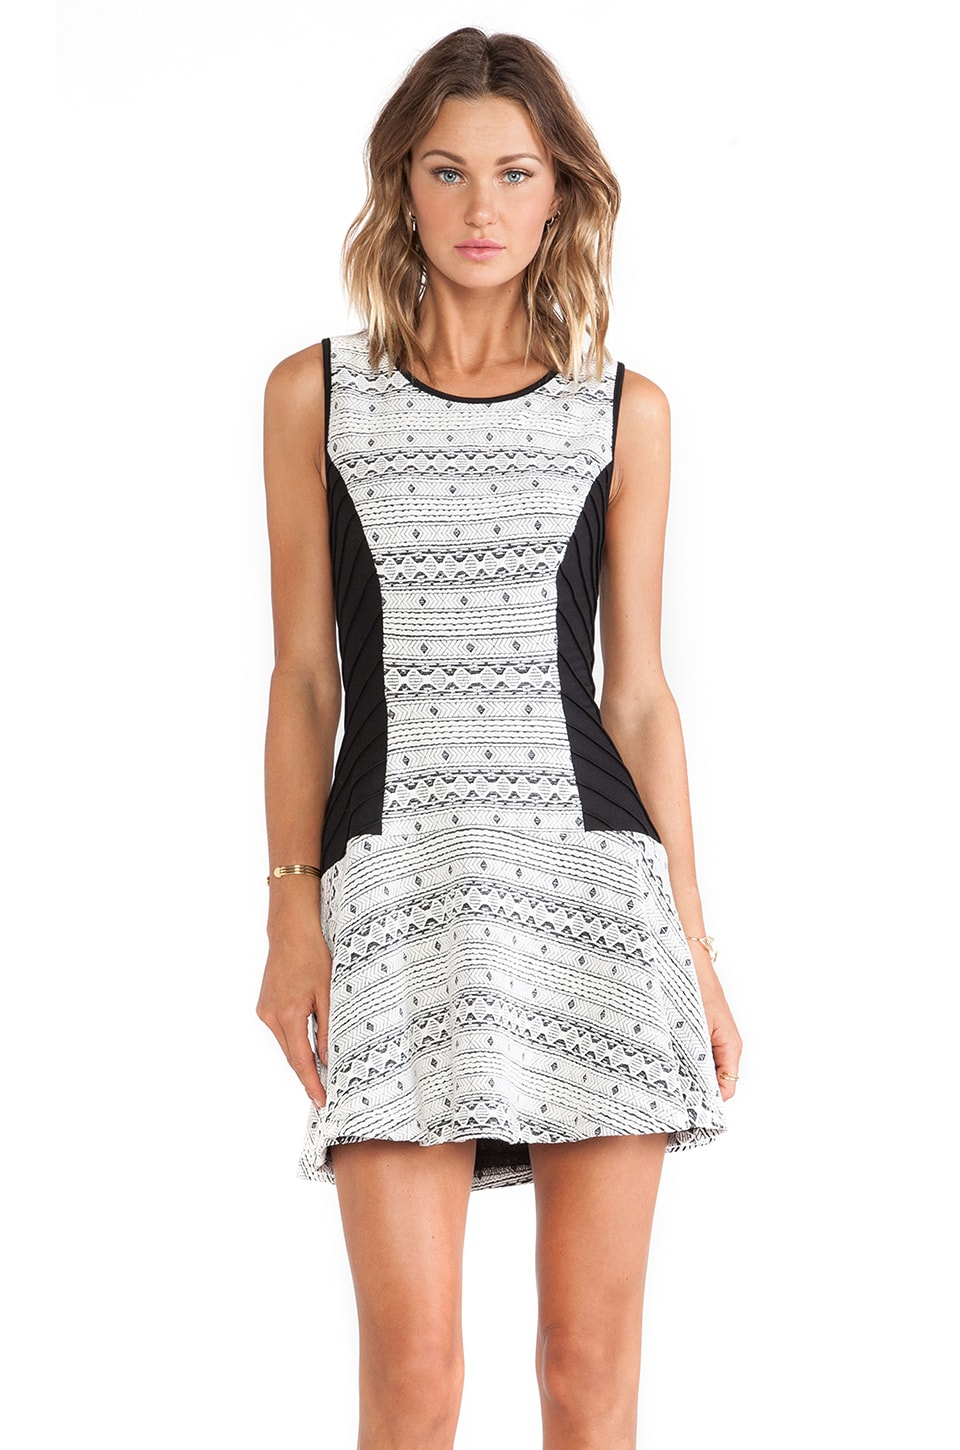 Greylin Evlin Knit Dress in Black & White